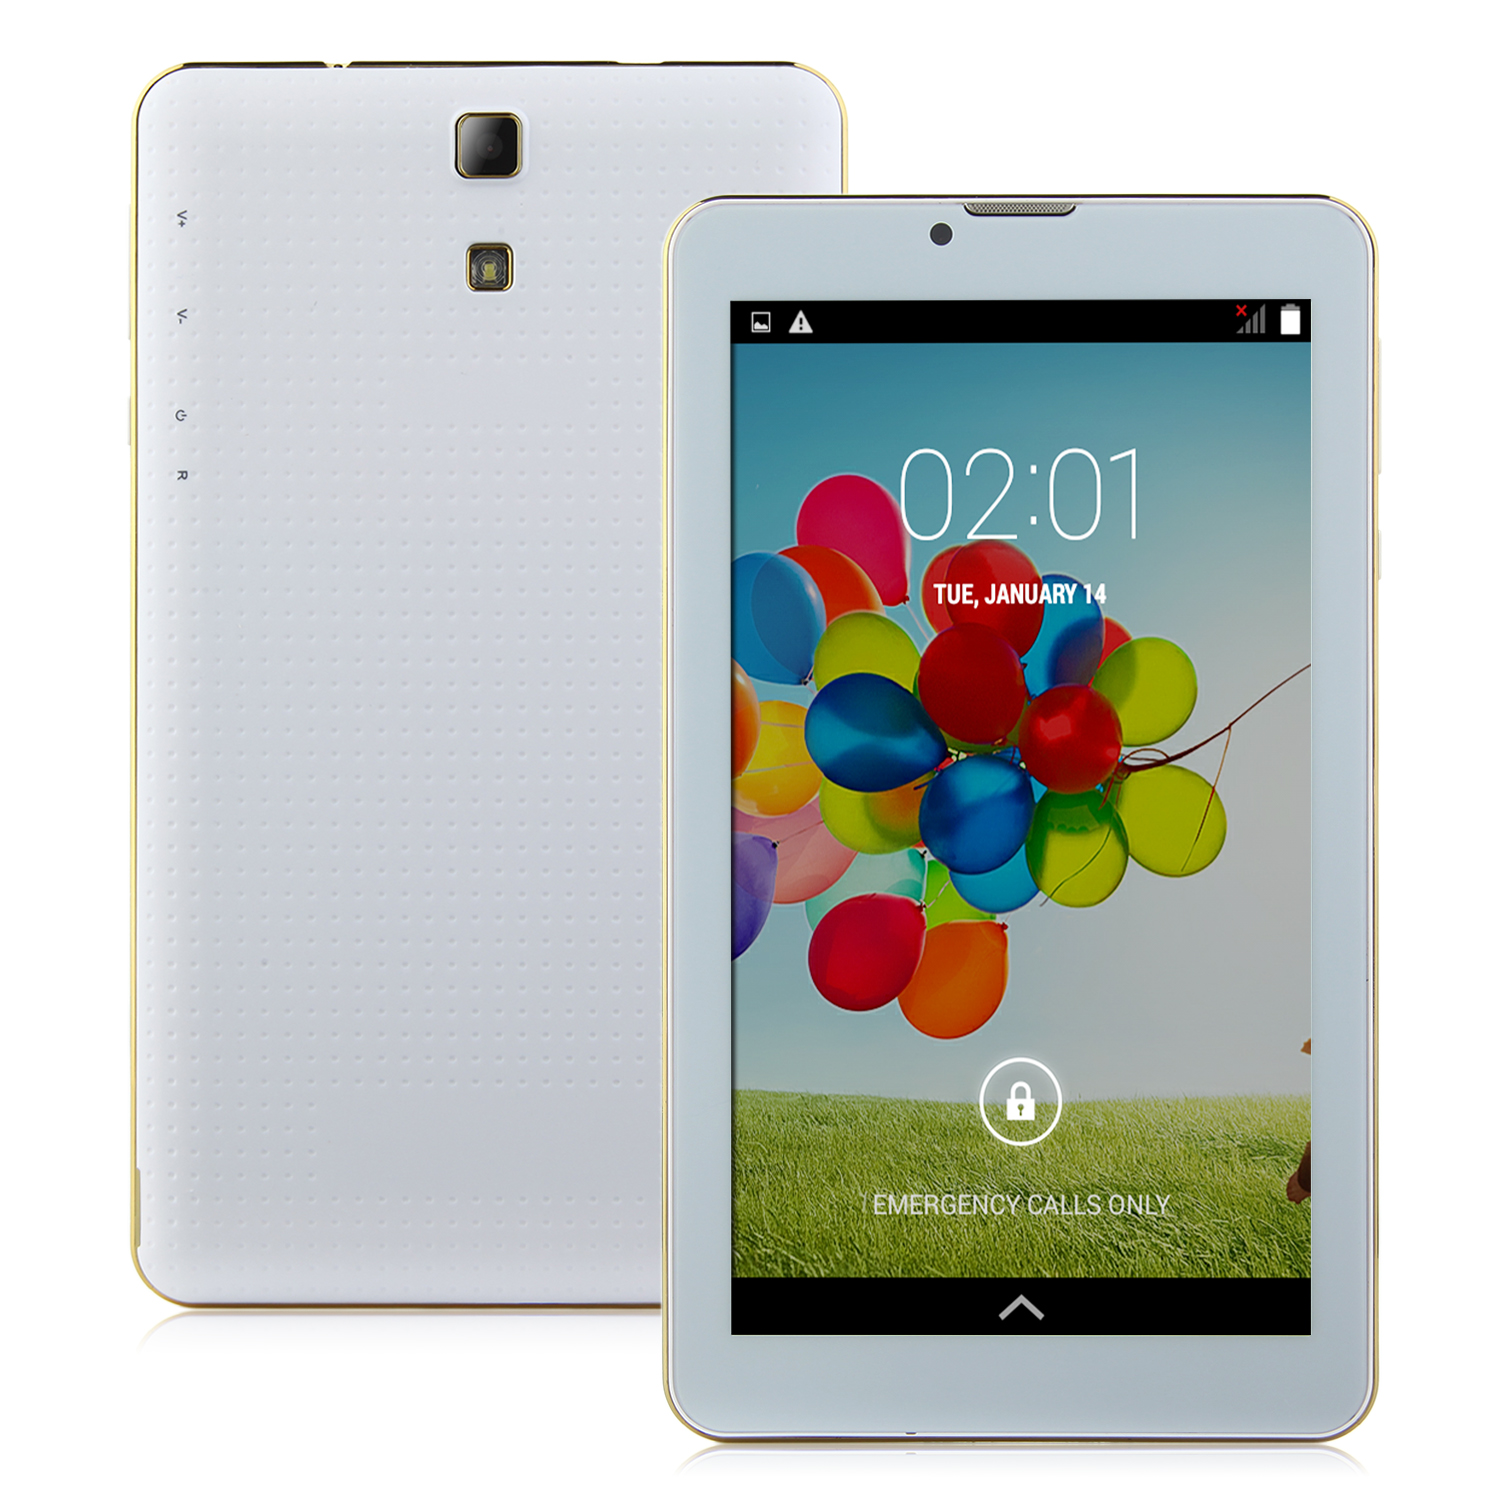 S75 3G Tablet PC 7.0 Inch Dual Core MTK6572W Android 4.4 4GB White